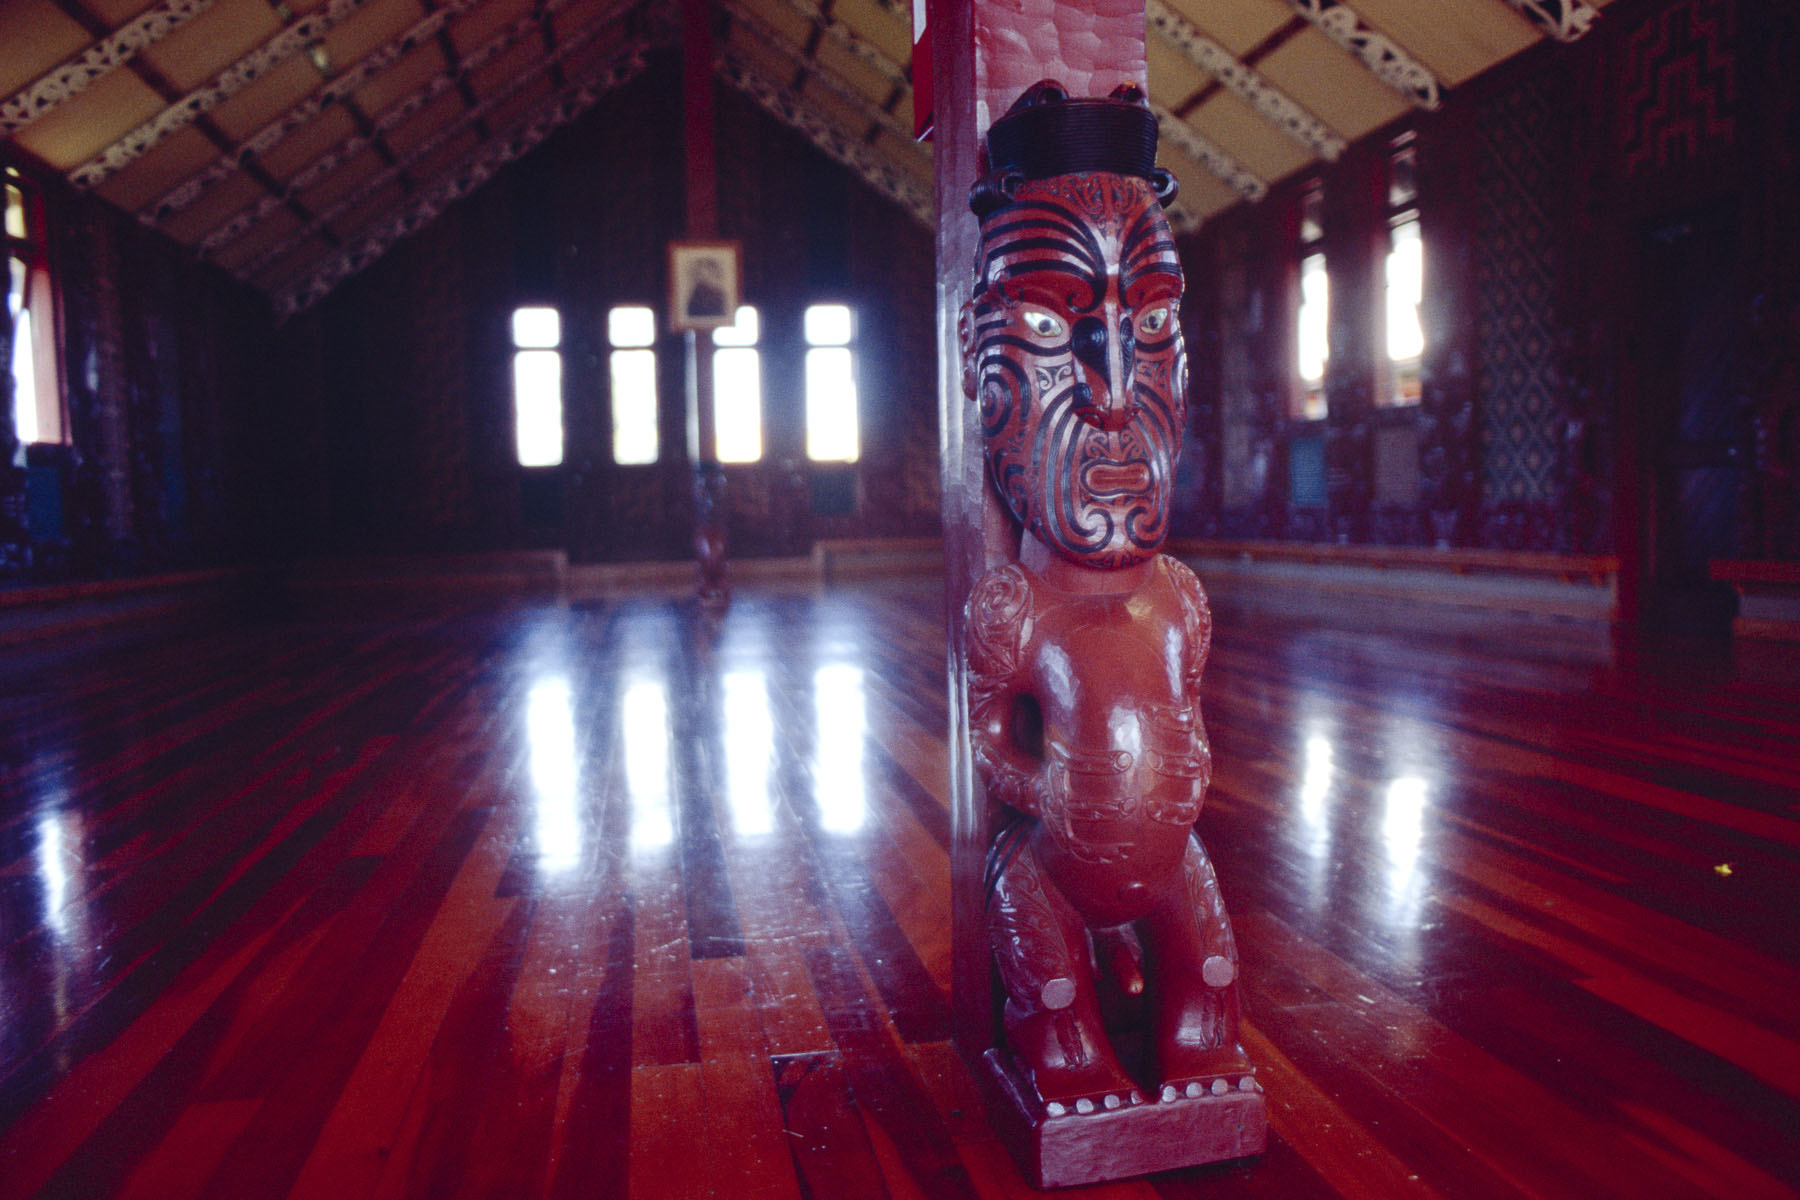 A marae, Maori traditional meeting place in May 2000